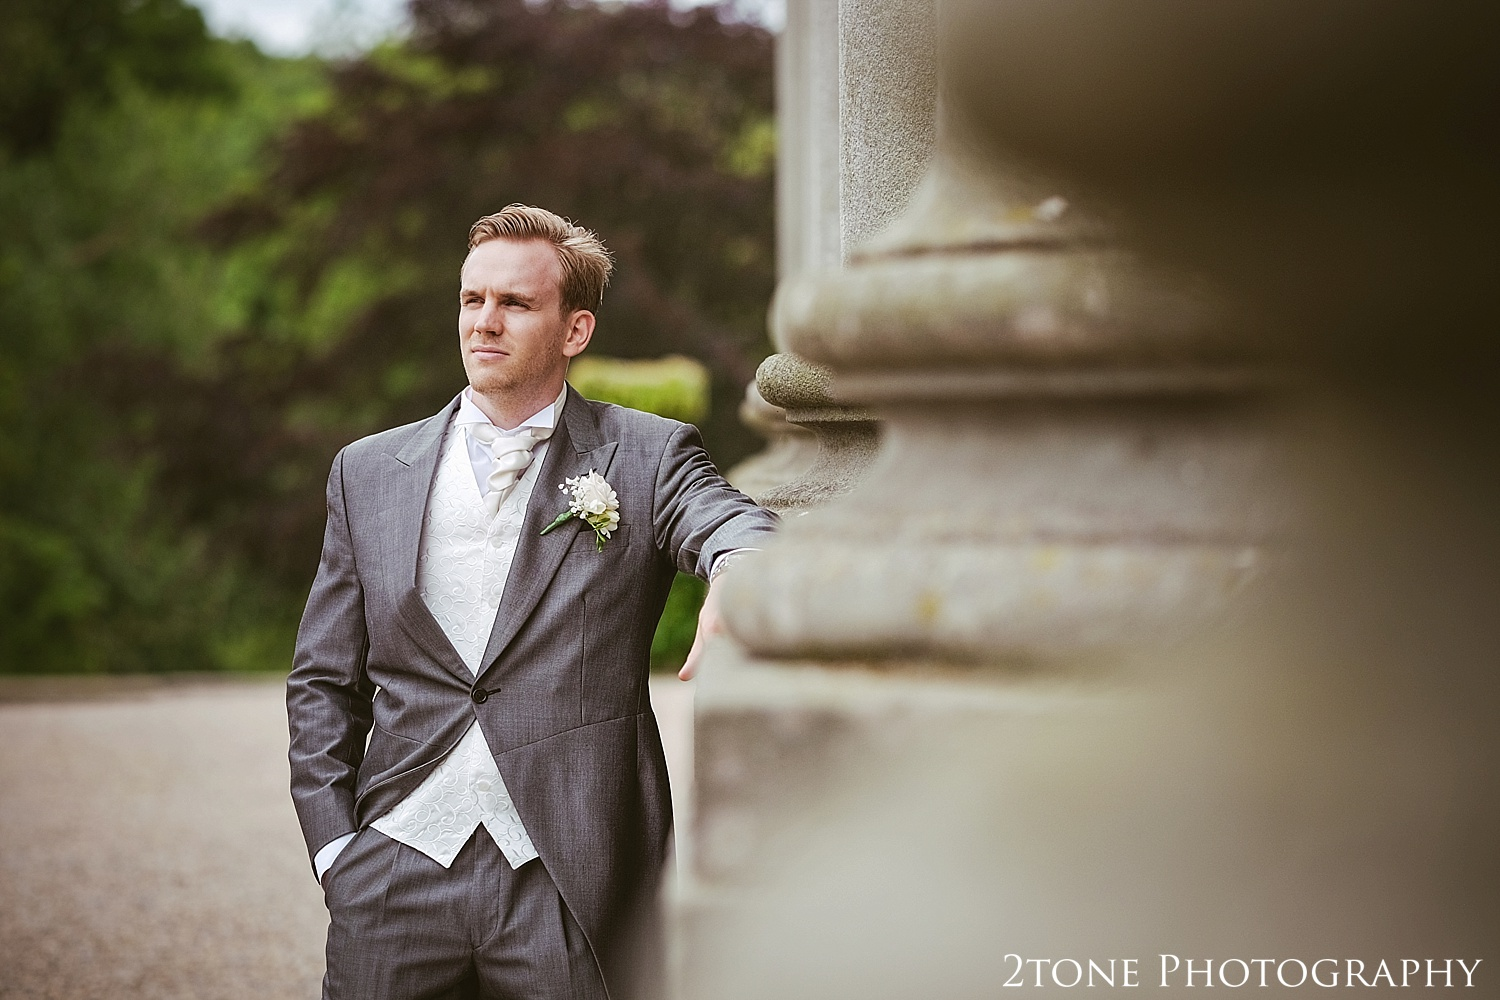 The groom.  Wedding photography at Wynyard Hall by husband and wife wedding photographers 2tone Photography www.2tonephotography.co.uk